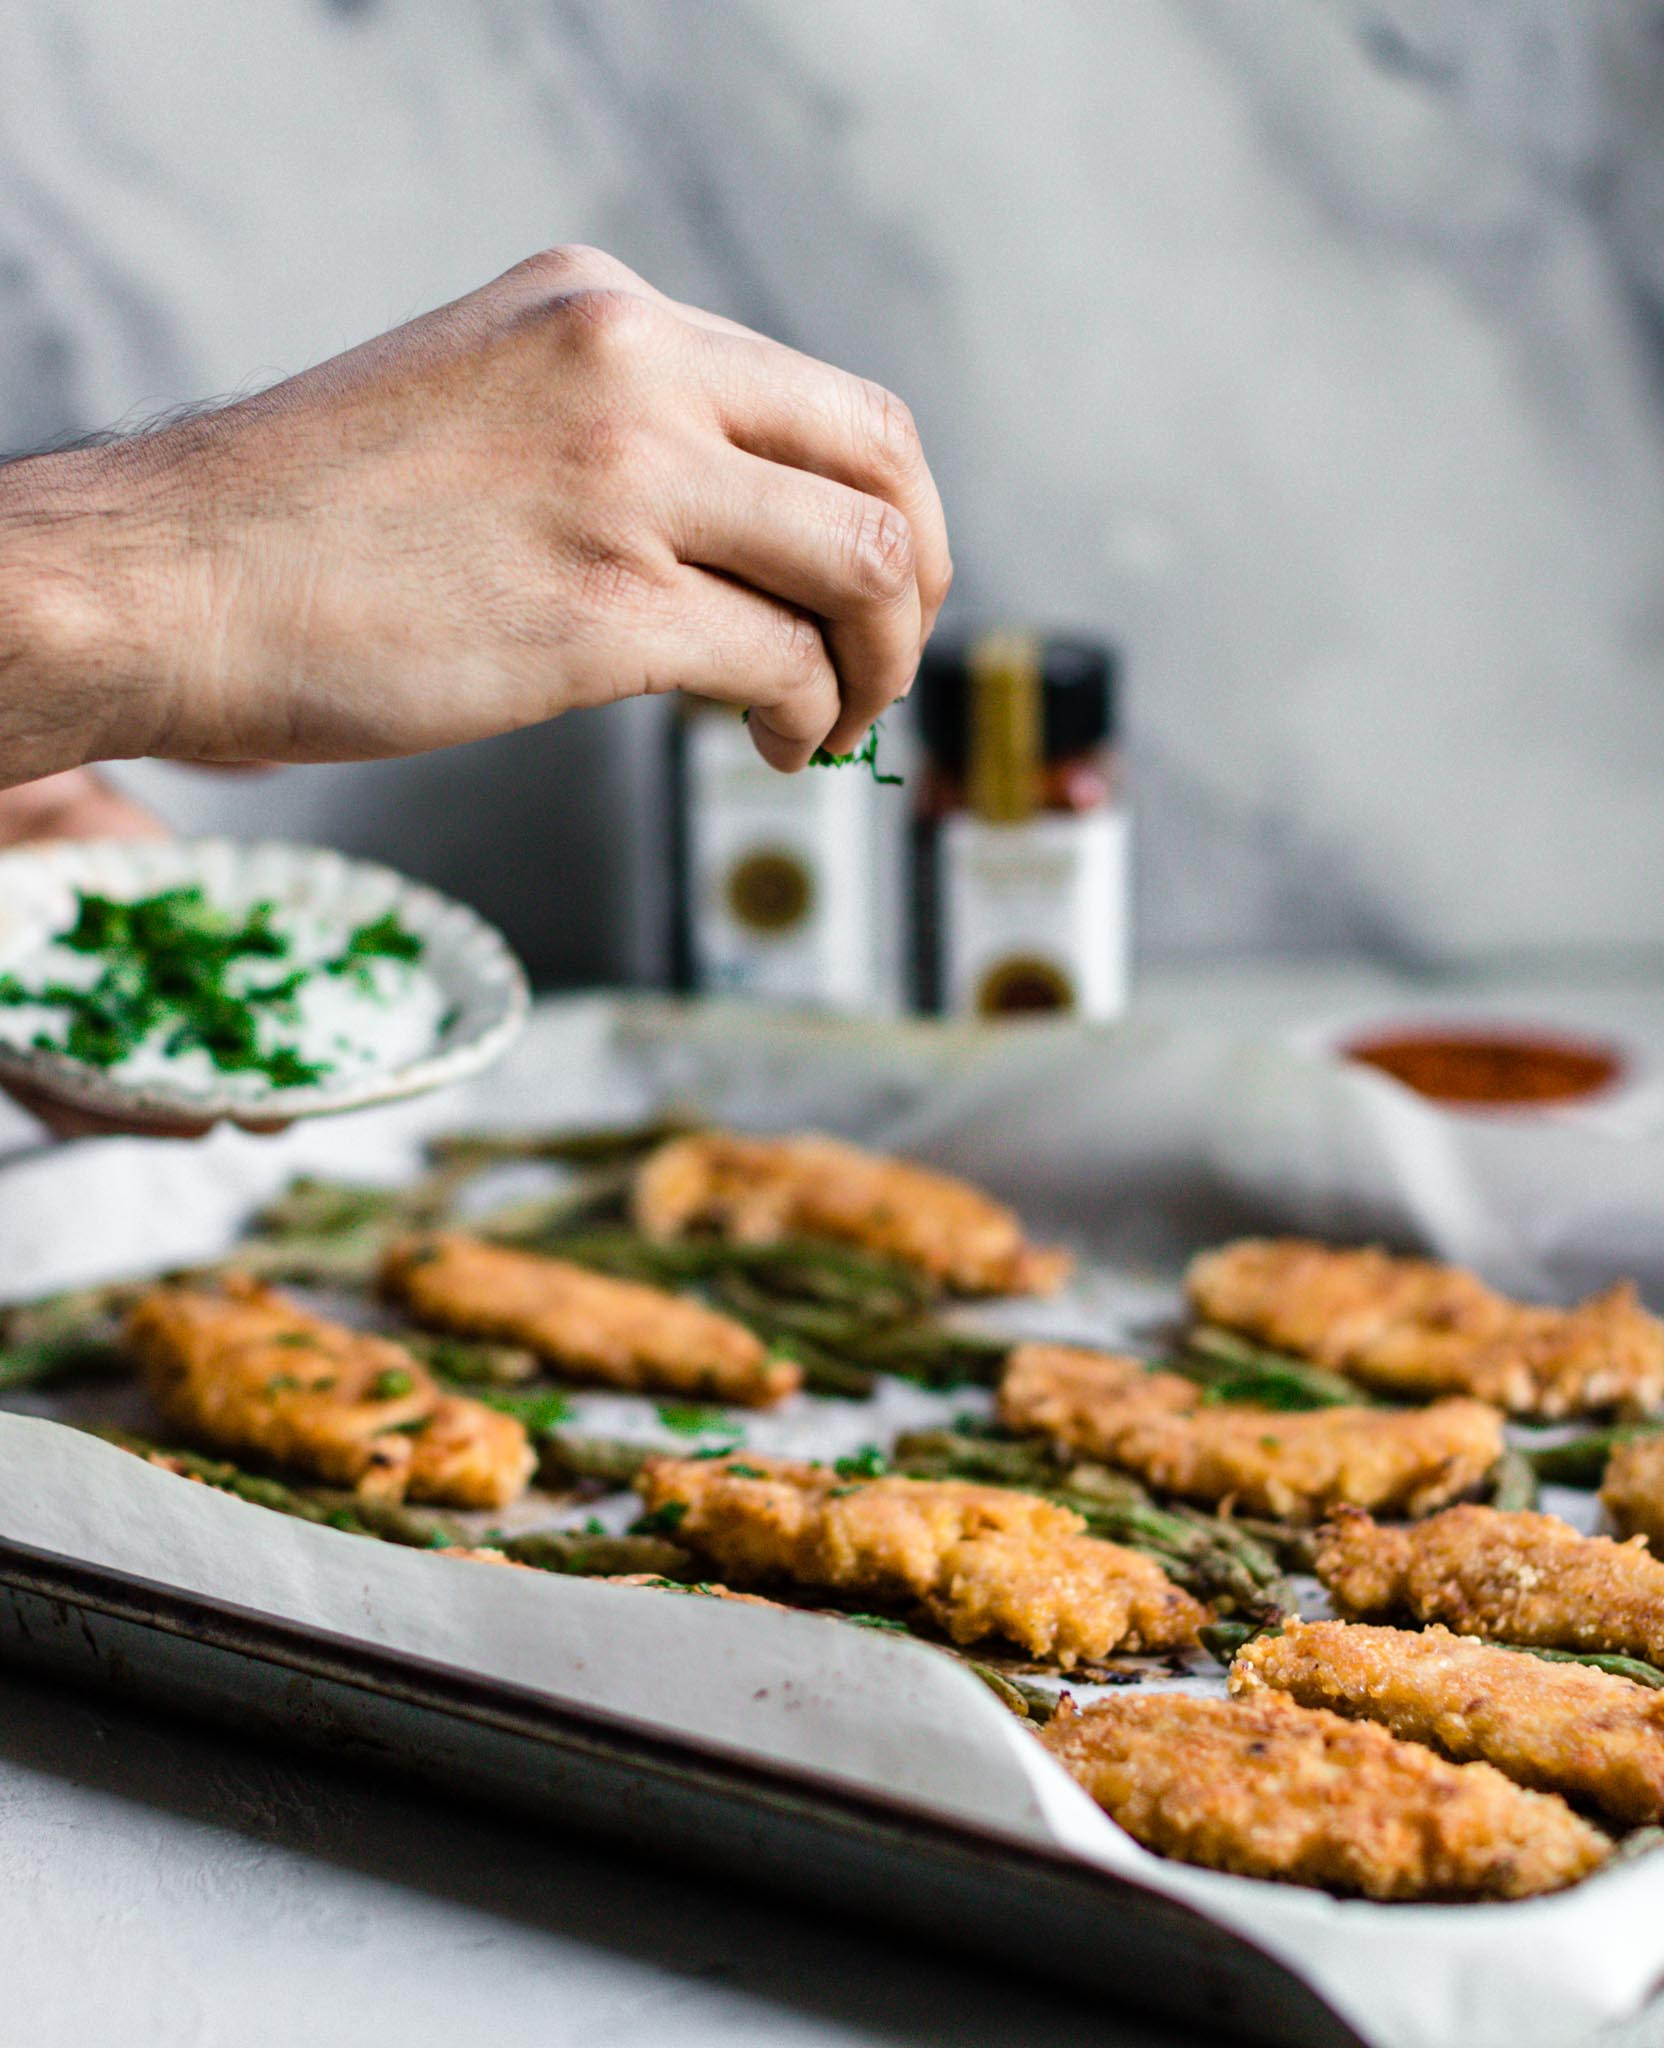 Sprinkling cilantro on top of a parchment lined baking sheet with Baked Peri Peri Chicken Tenders with Masala Green Beans.